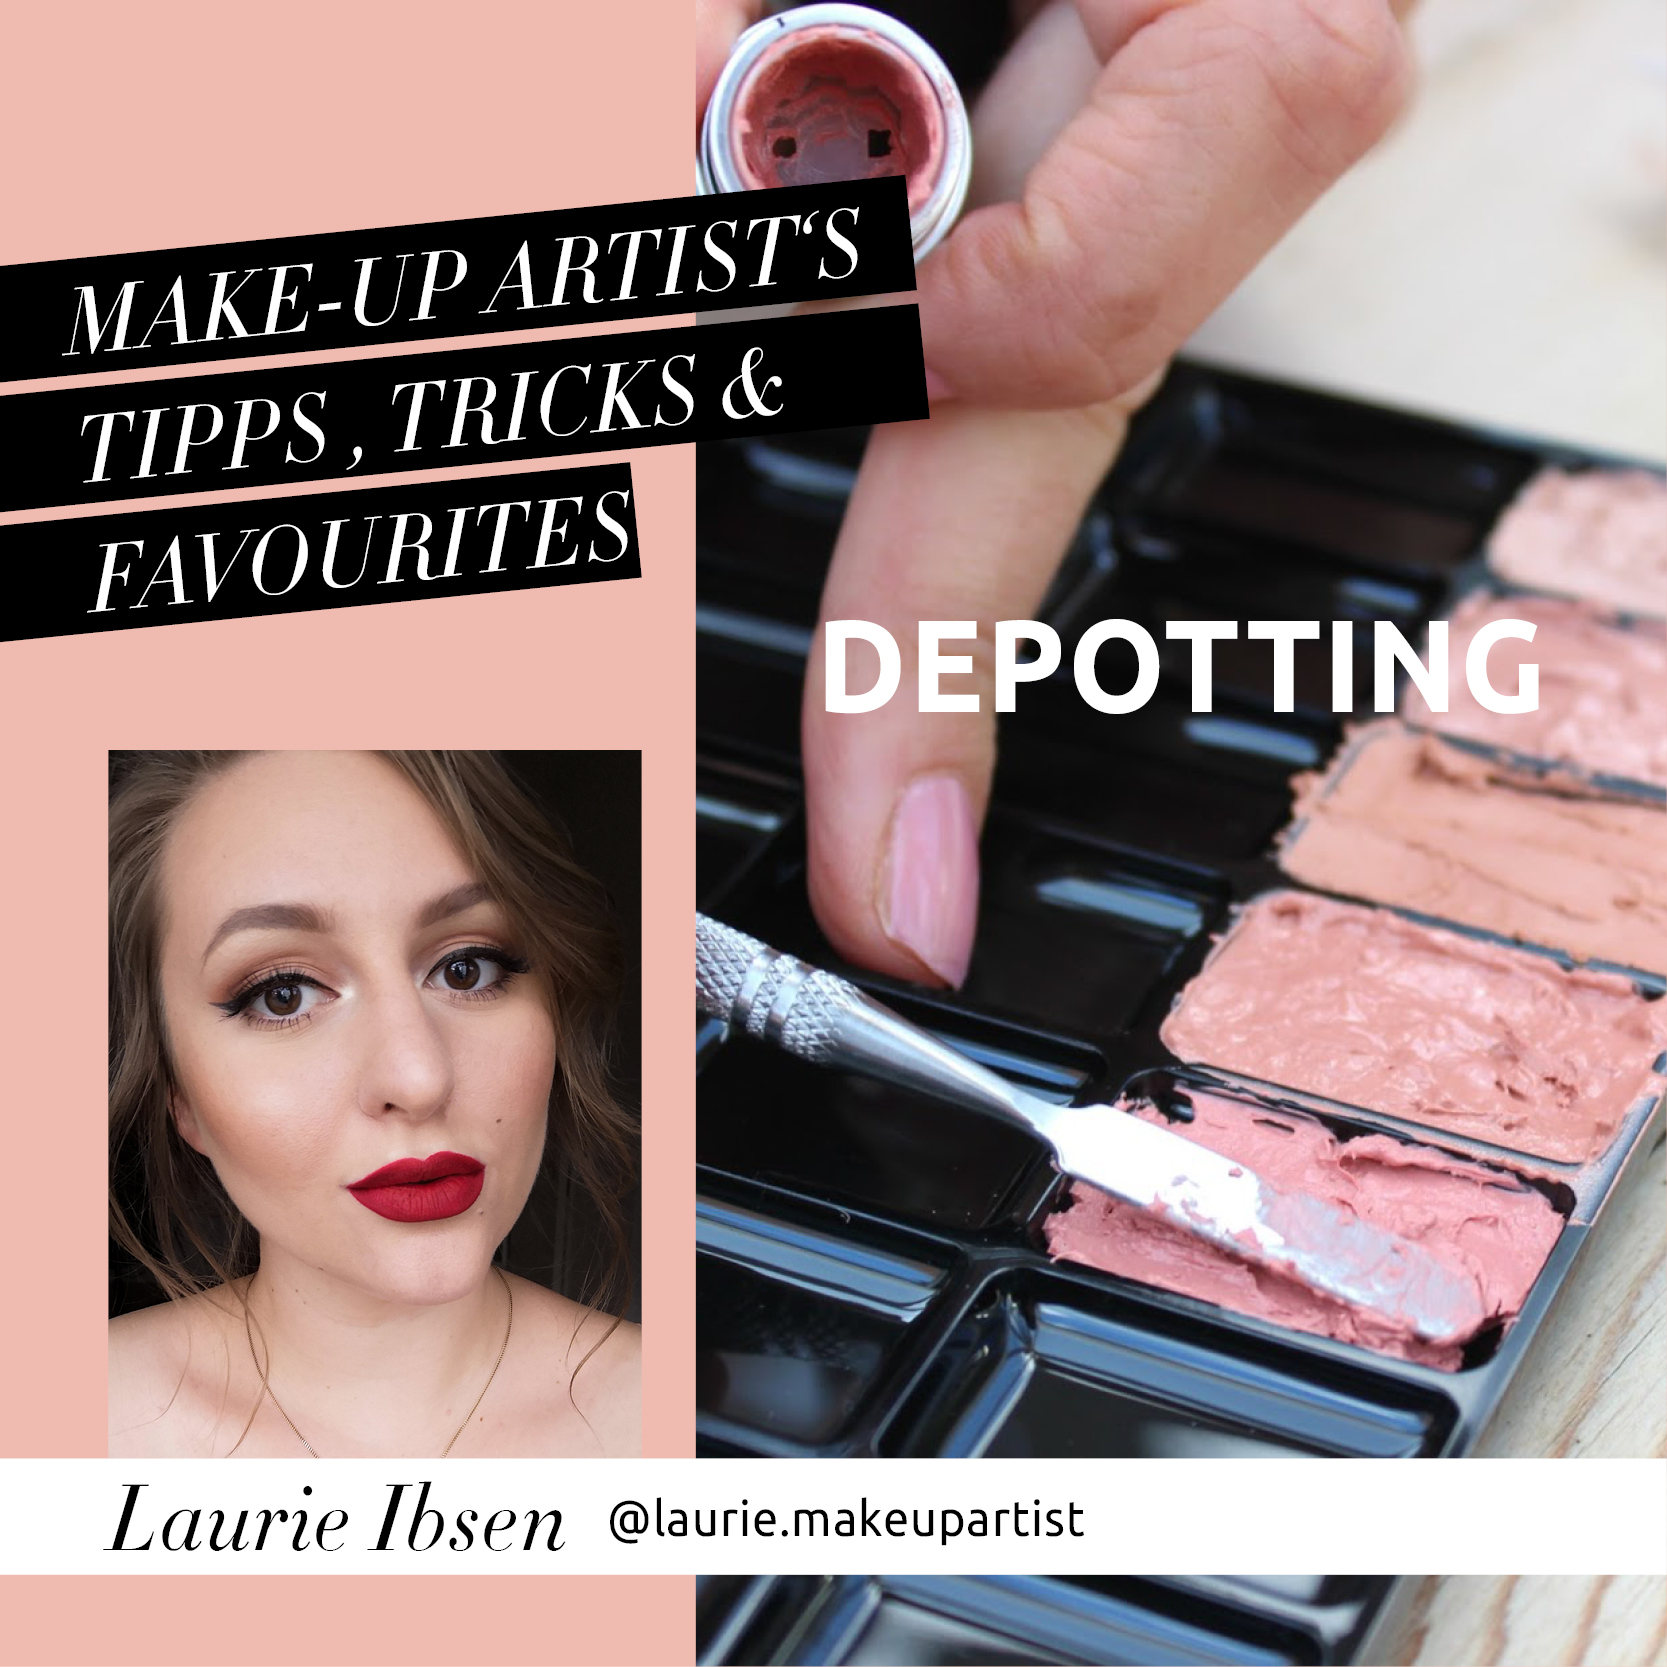 Laurie's perfekt organisiertes Make-up Kit